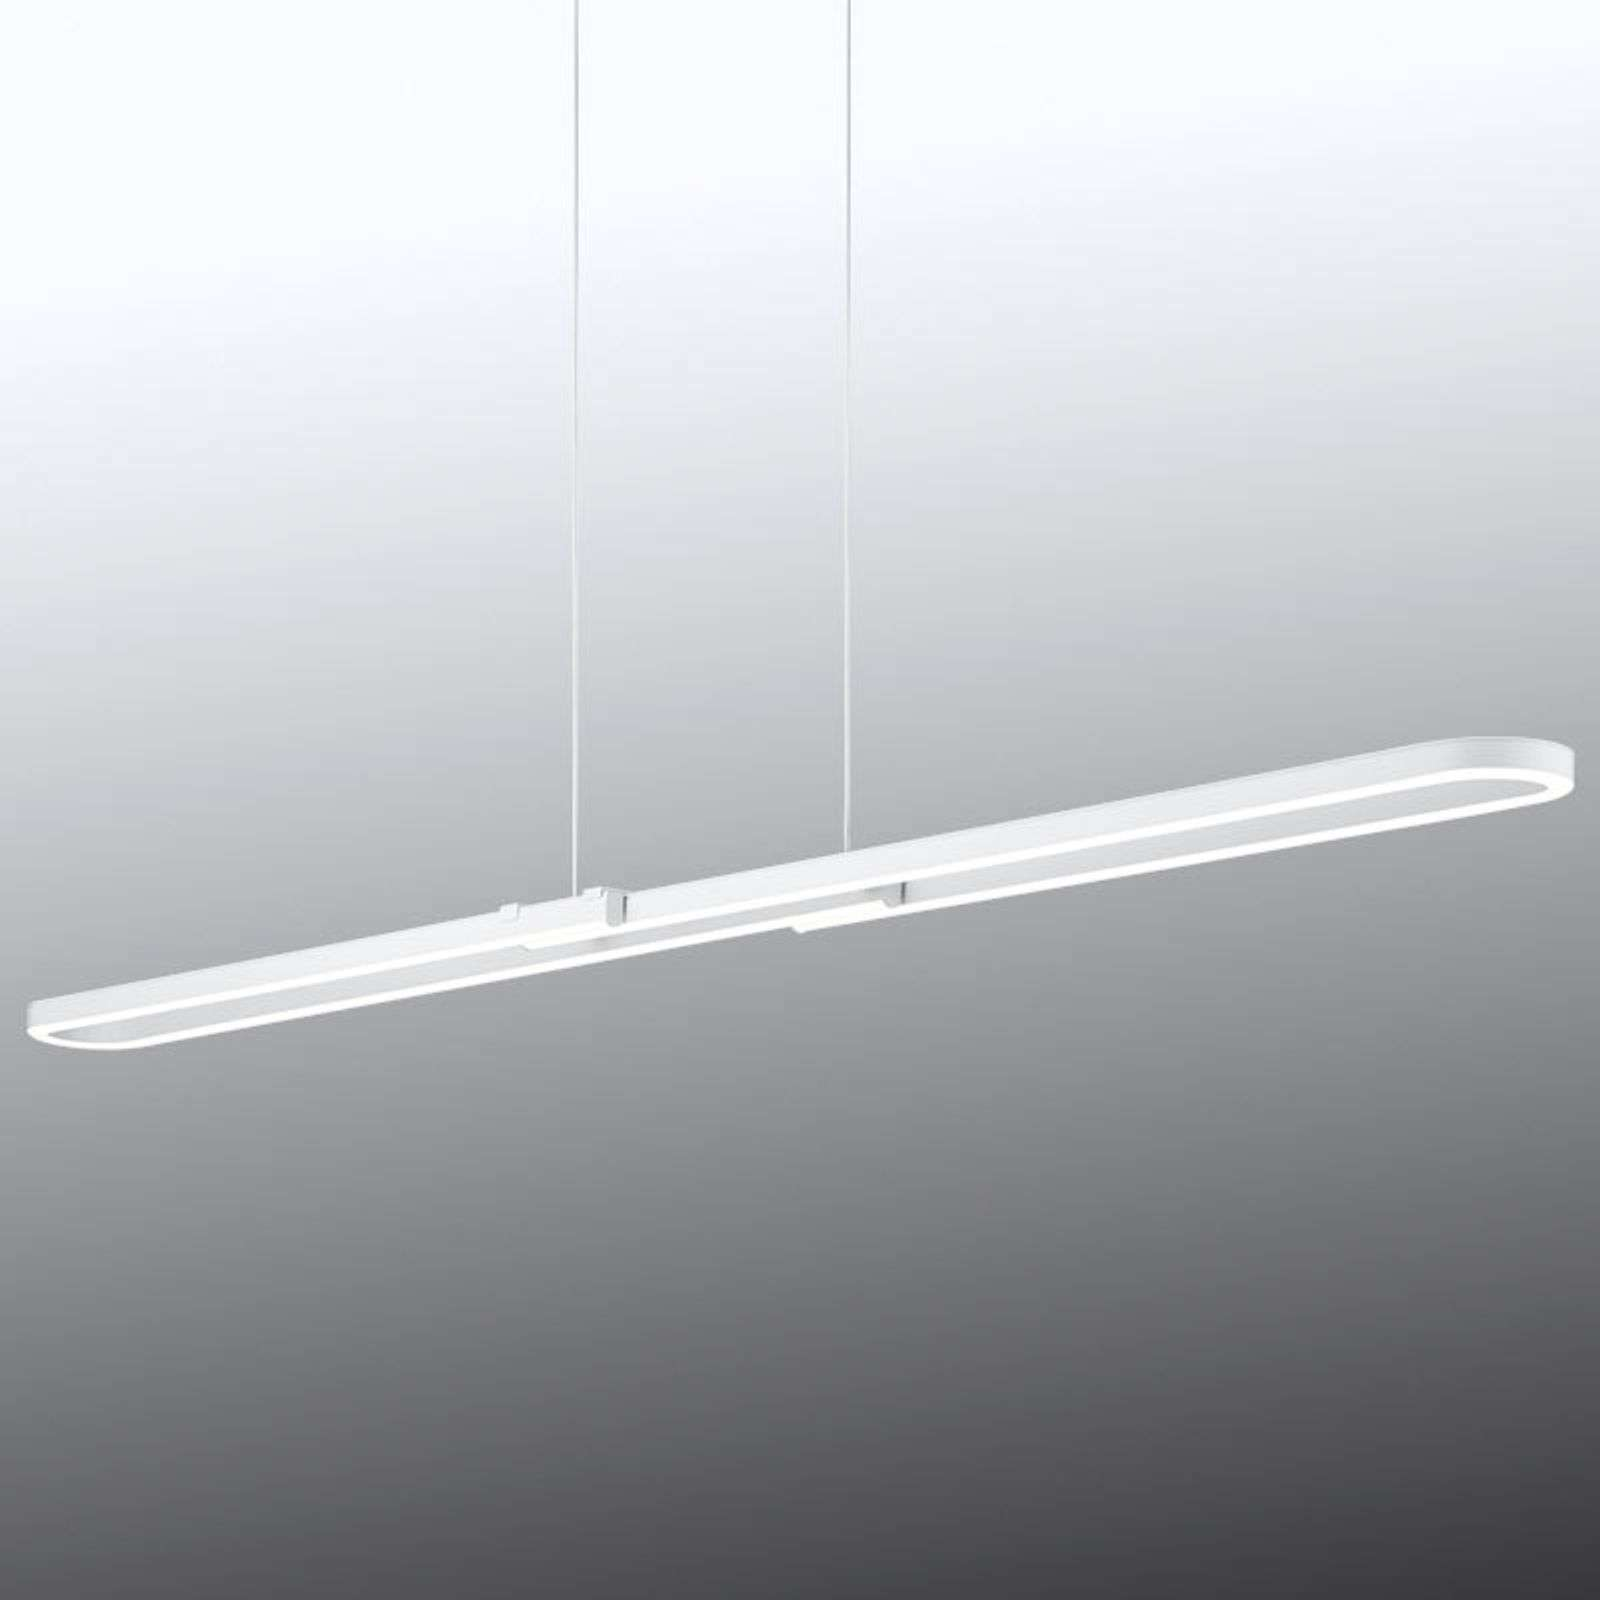 Romulus suspension LED extensible, 100-150cm